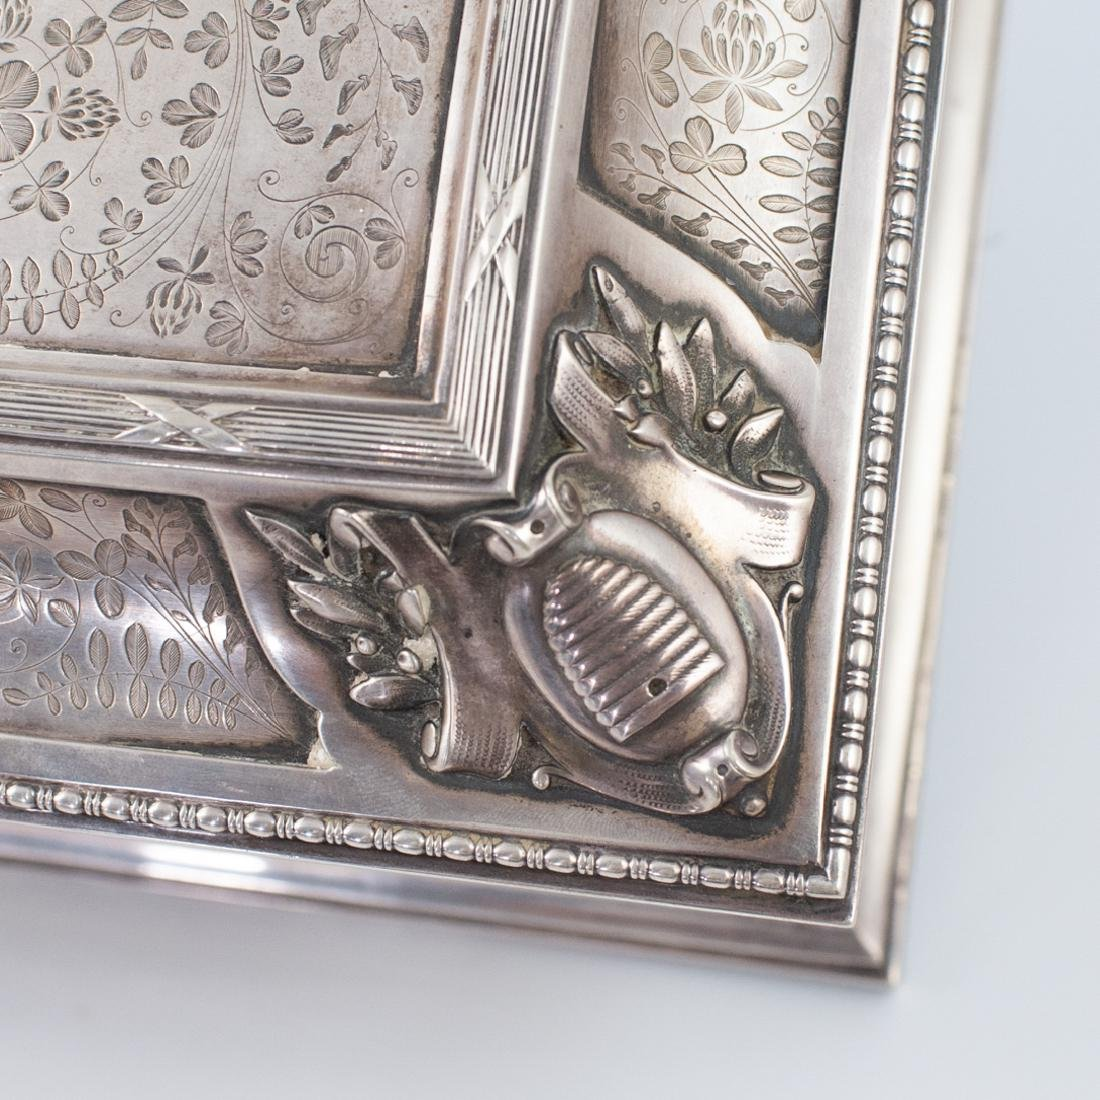 Antal Bachruch Antique Silver Jewelry Box - 7